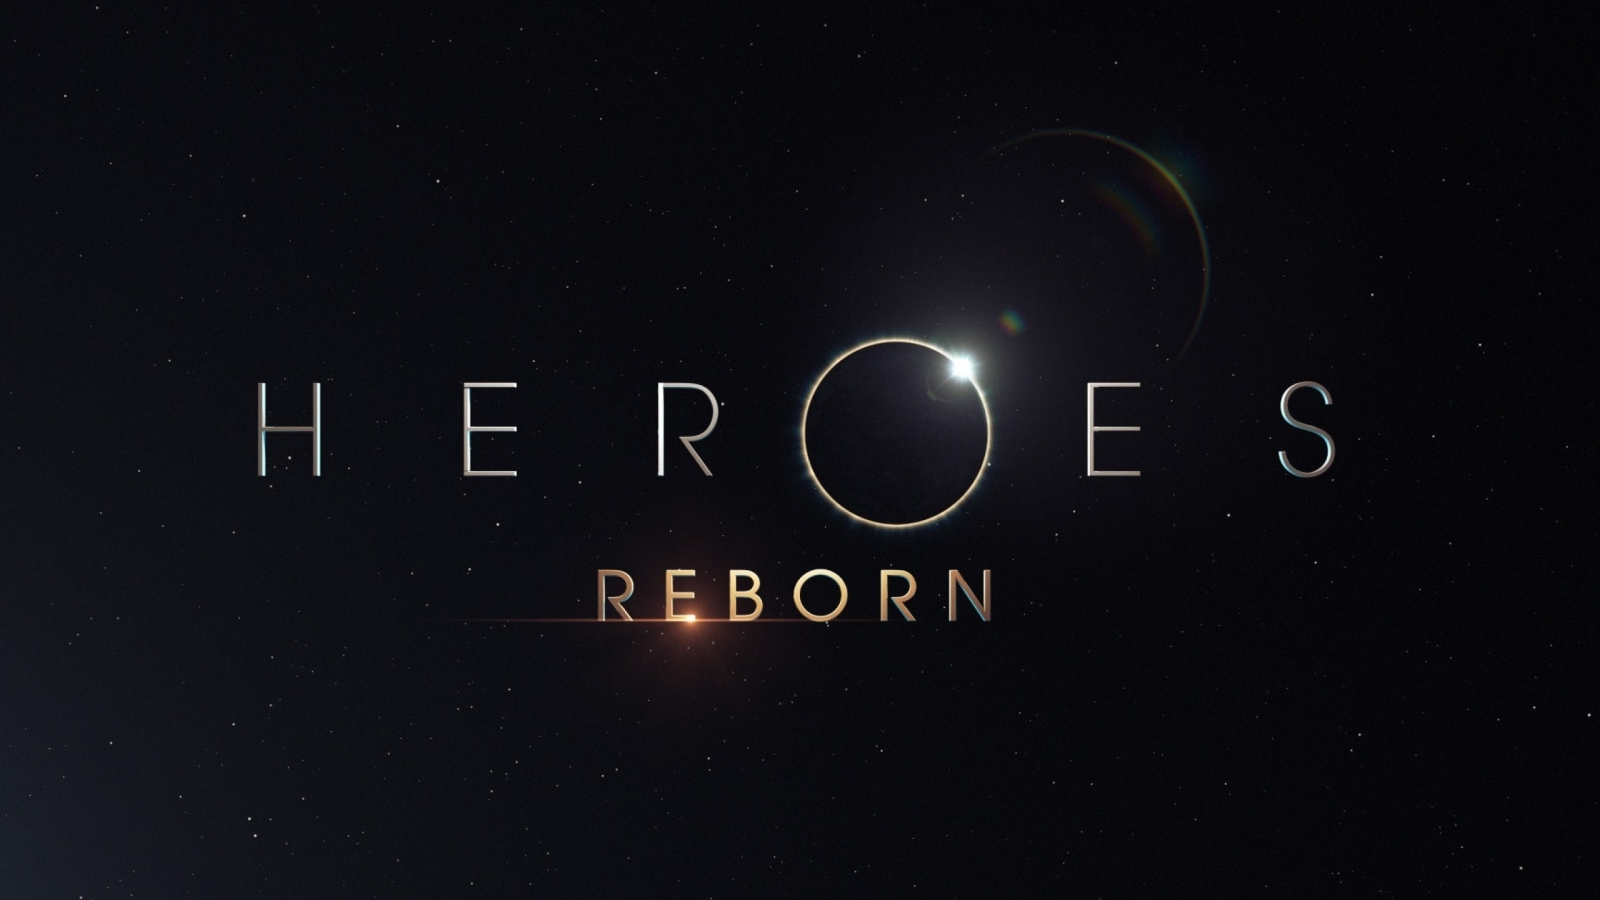 Heroes Reborn Logo for 1600 x 900 HDTV resolution